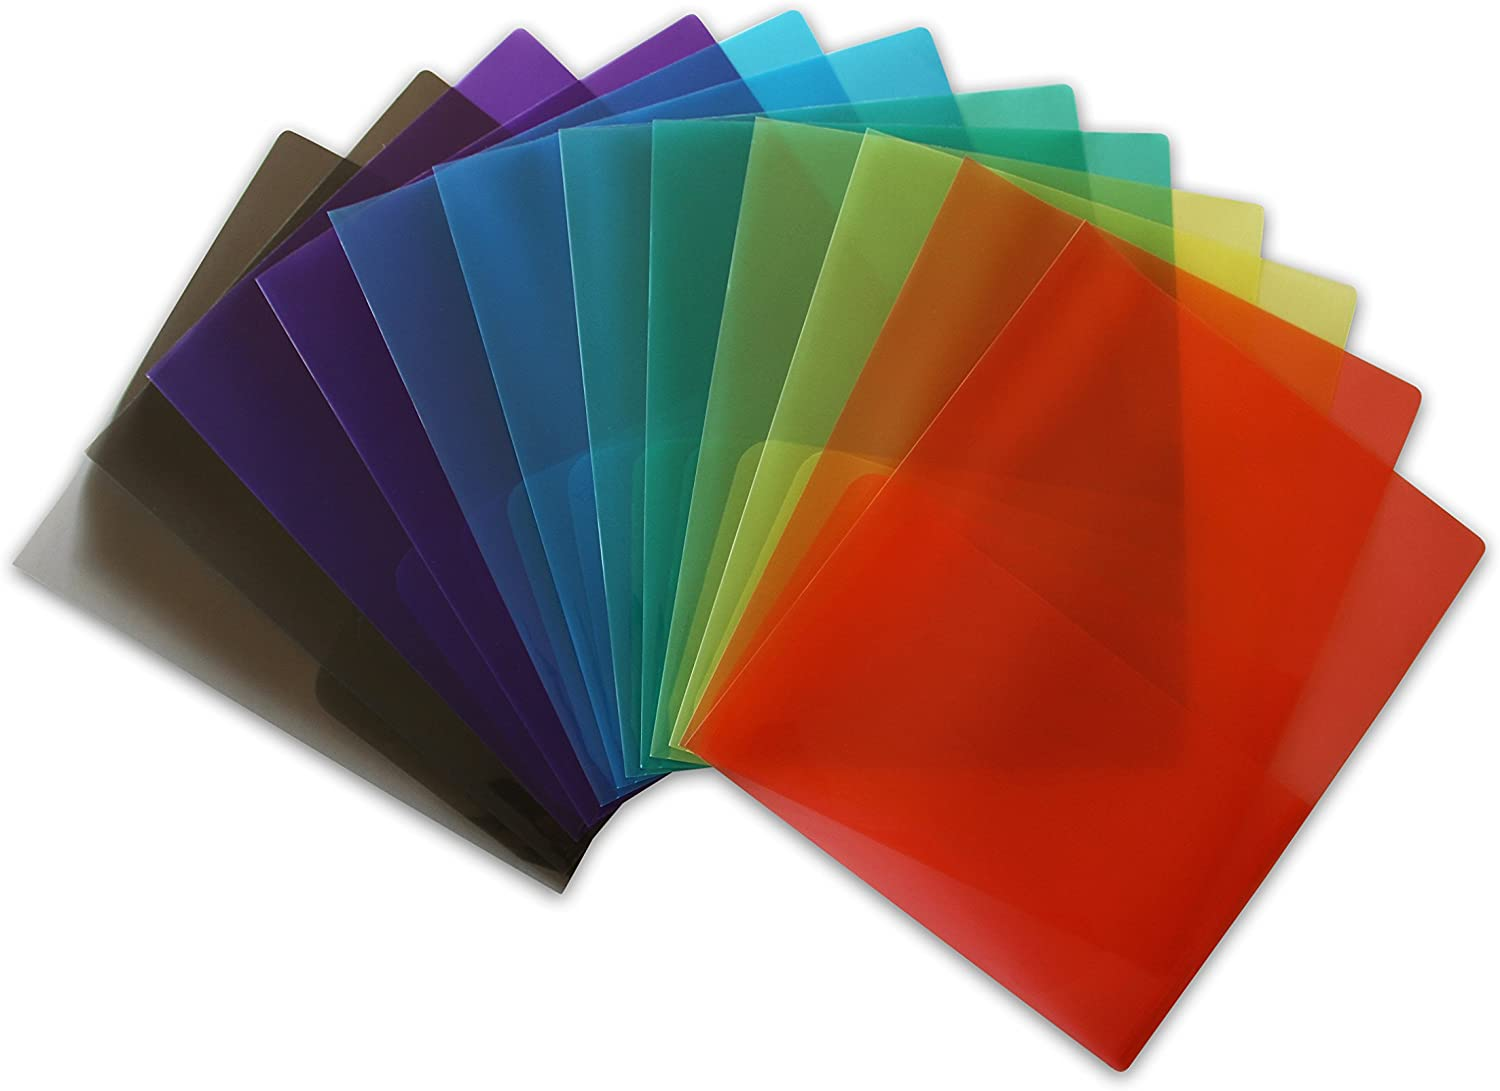 ... Pack of 6 Assorted Colors STEMSFX Clear Lightweight Plastic 2 Pocket Folder